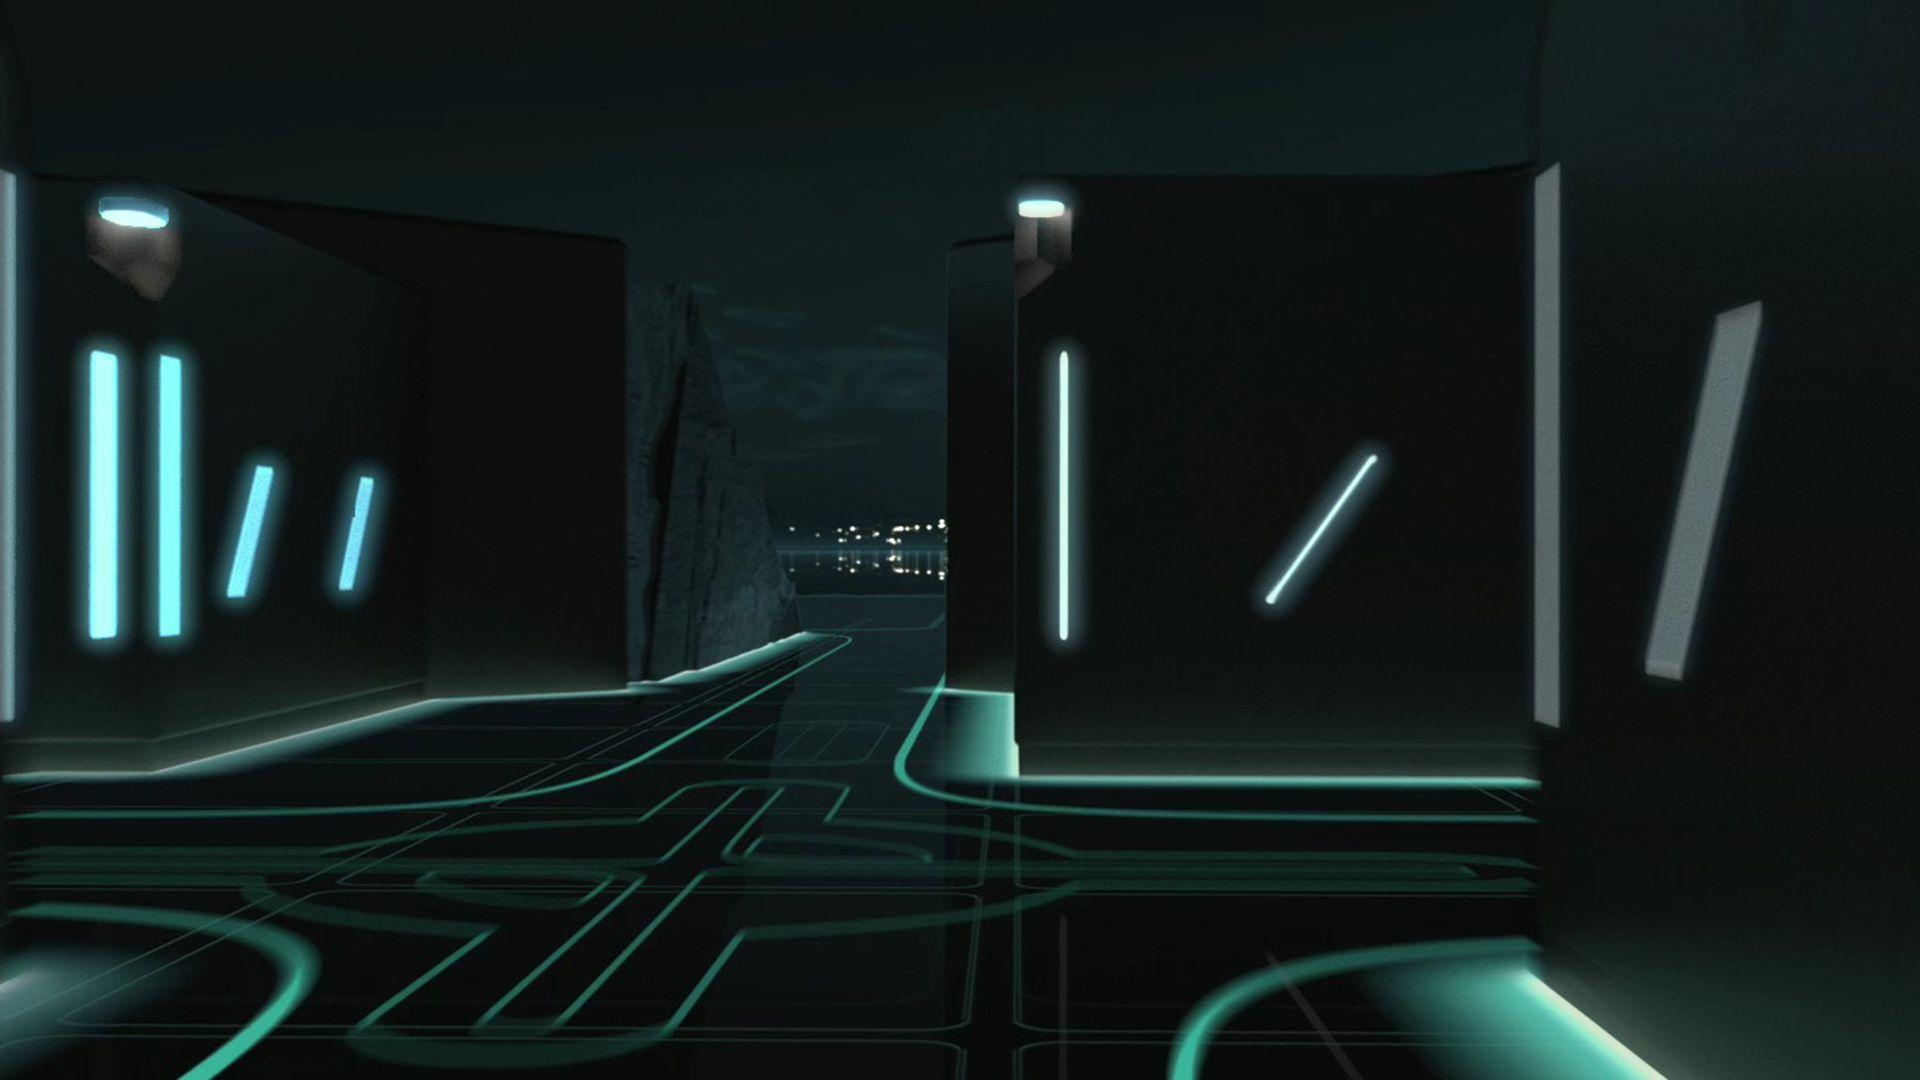 tron wallpaper hd style - photo #15